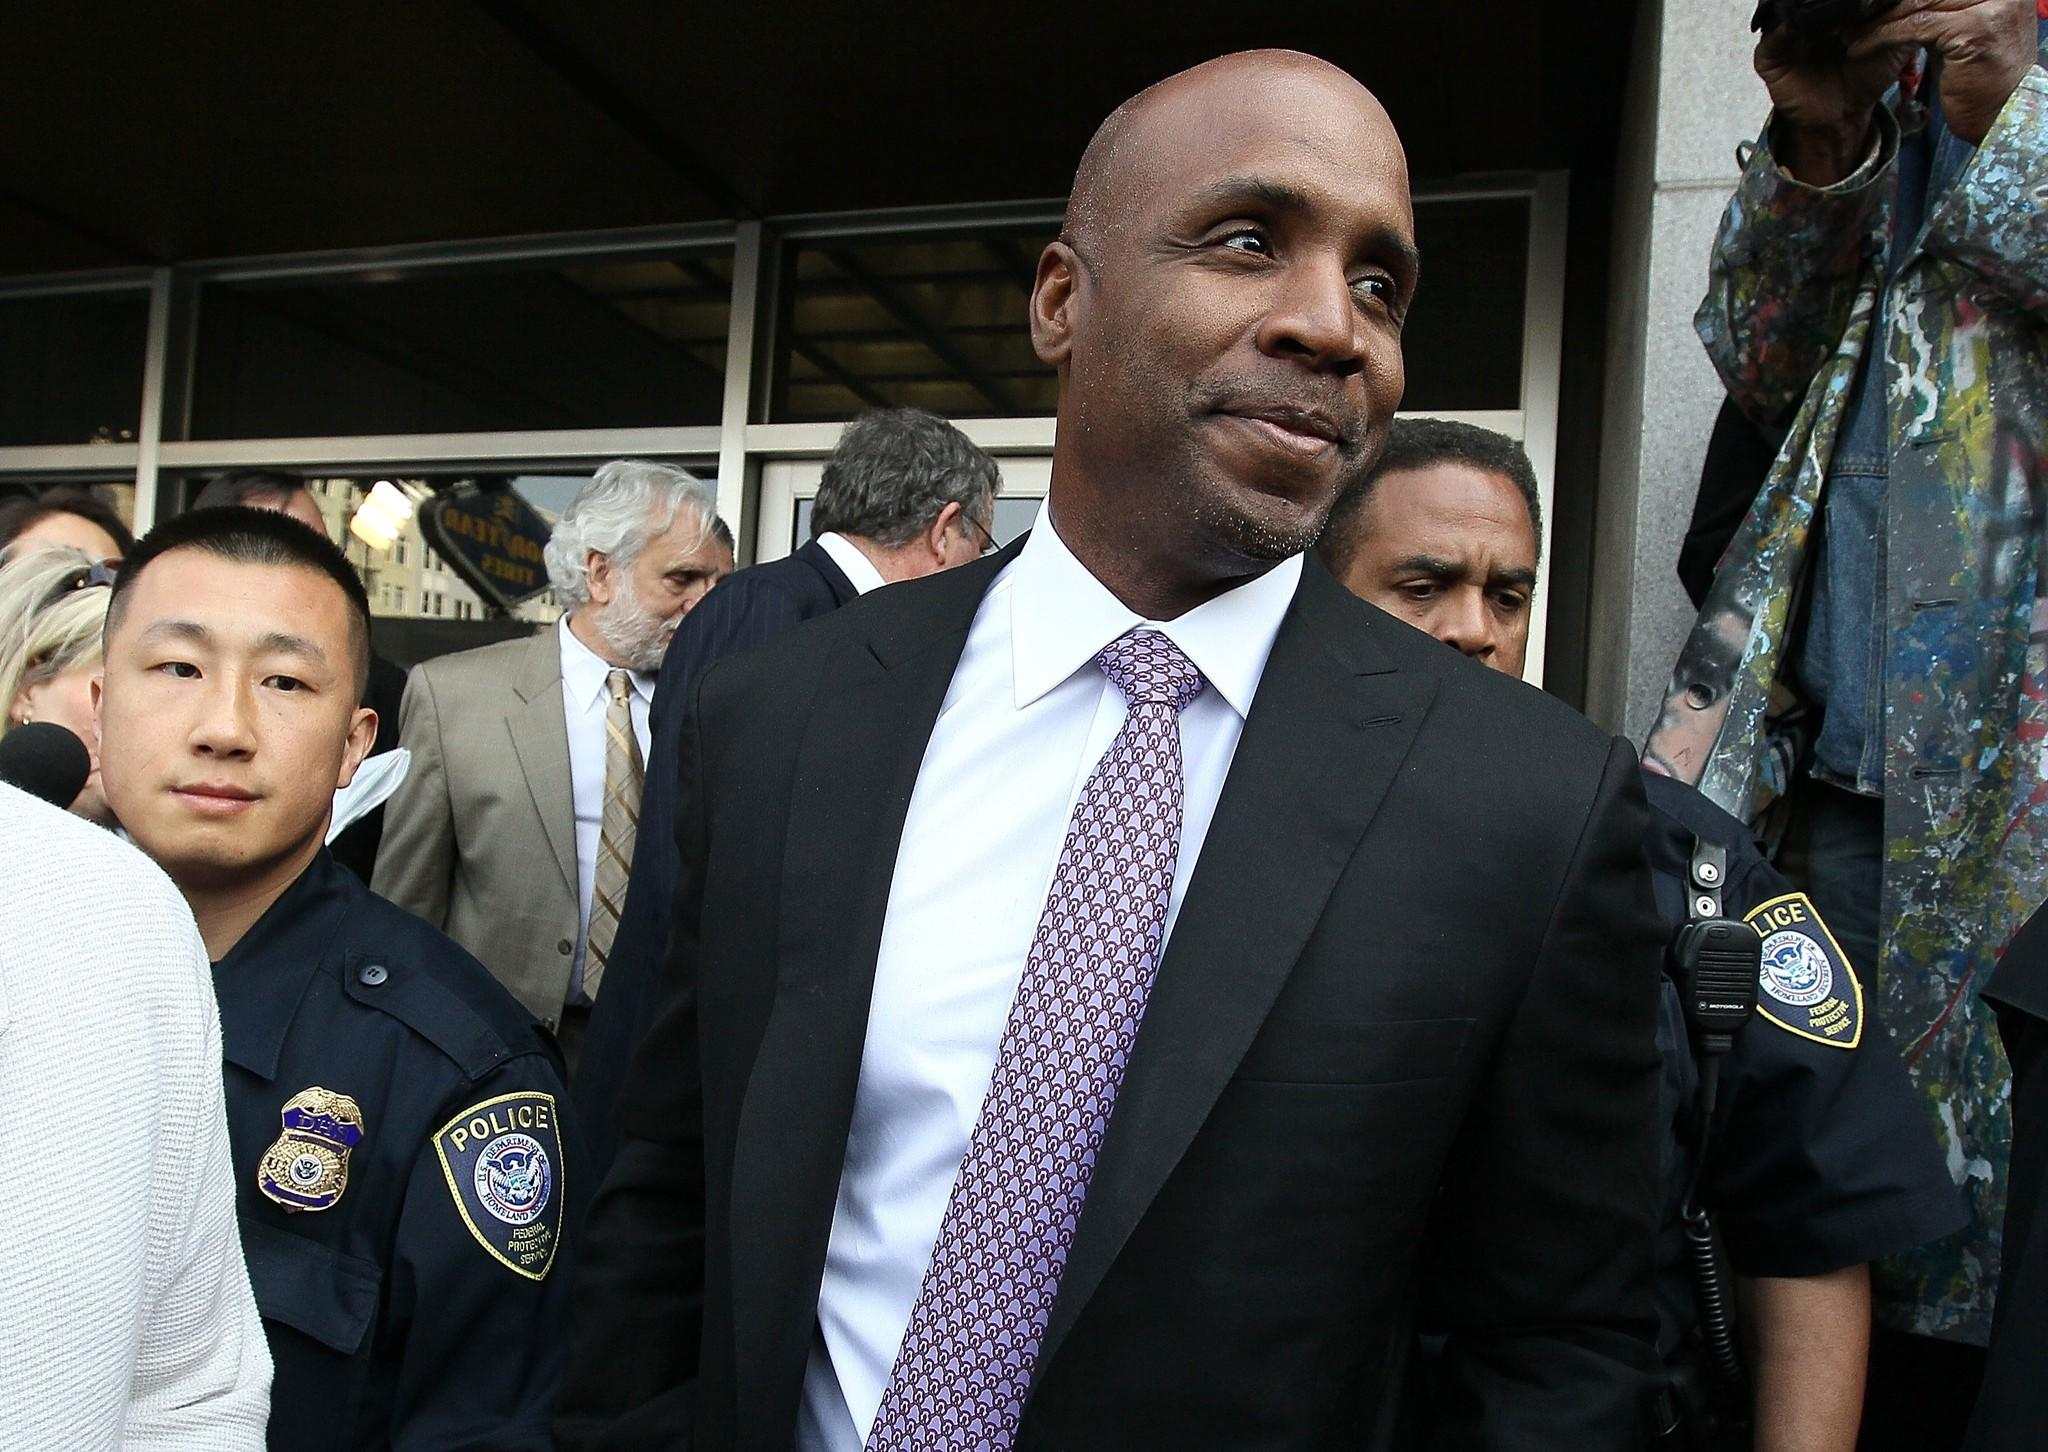 Former Major League Baseball player Barry Bonds smiles as he leaves federal court in 2011.